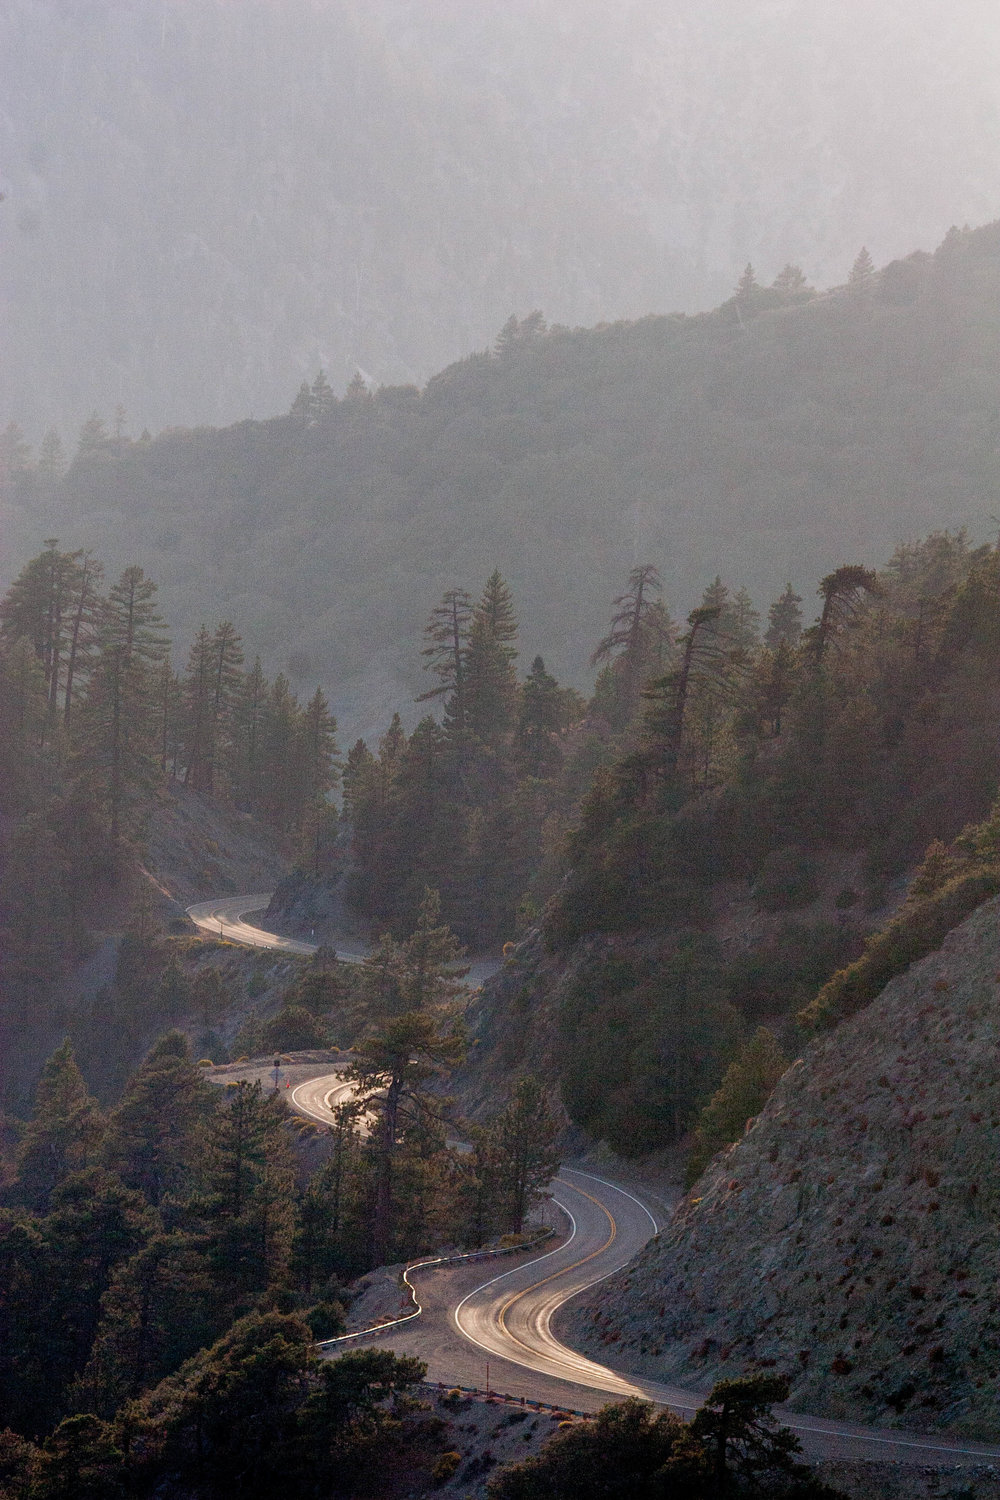 Angeles Crest Highway - Wrightwood